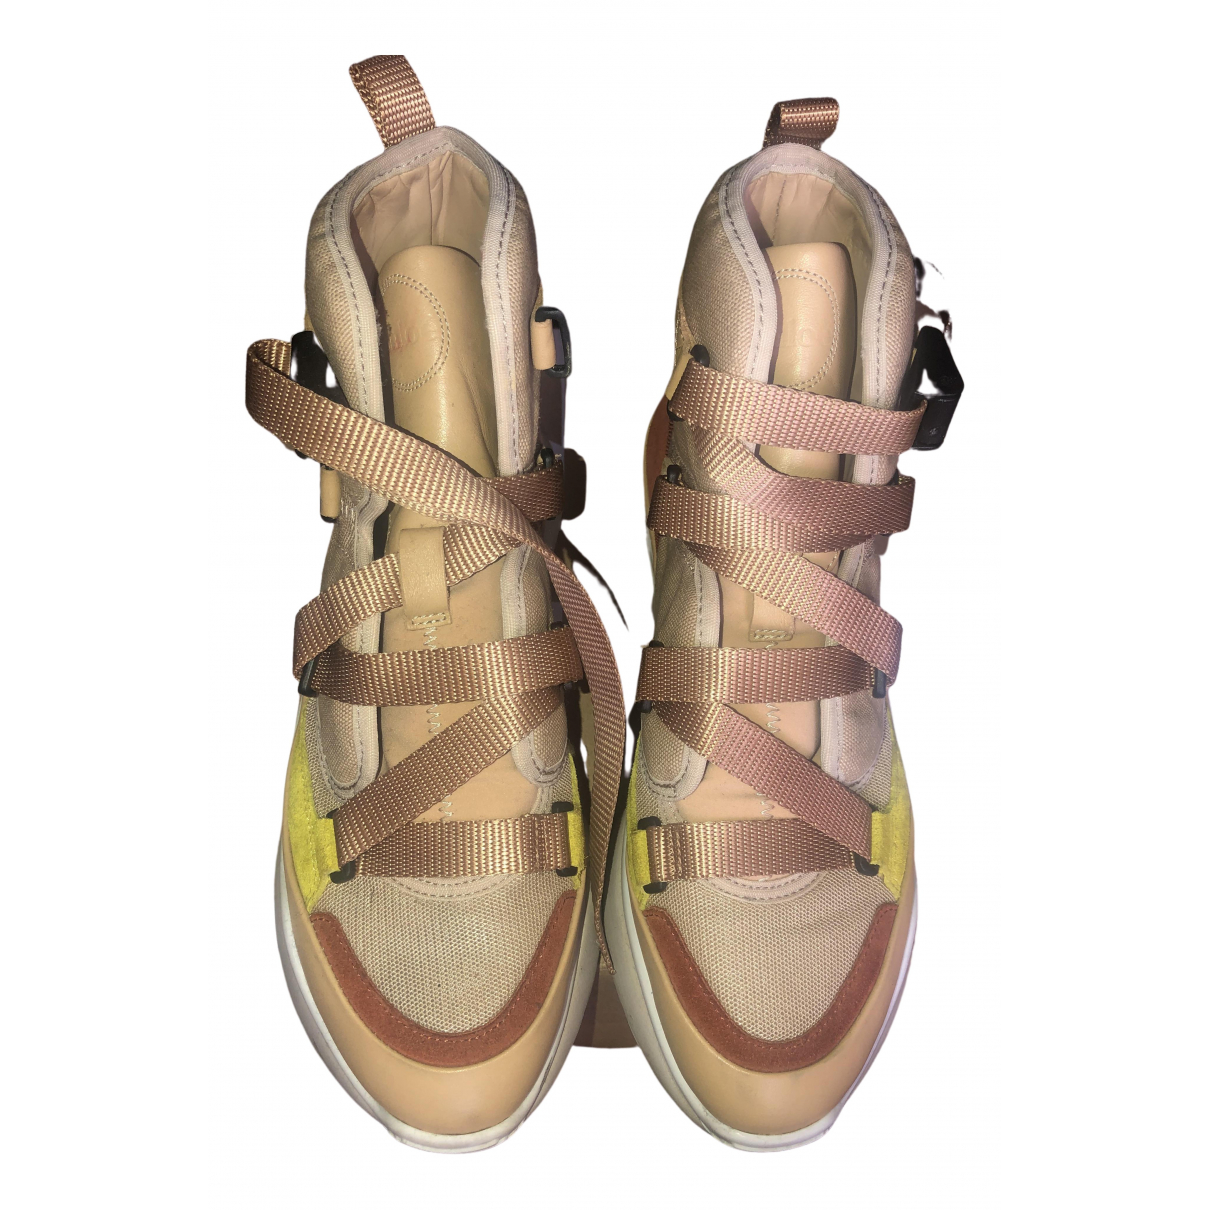 Chloé Sonnie Beige Leather Trainers for Women 39 EU